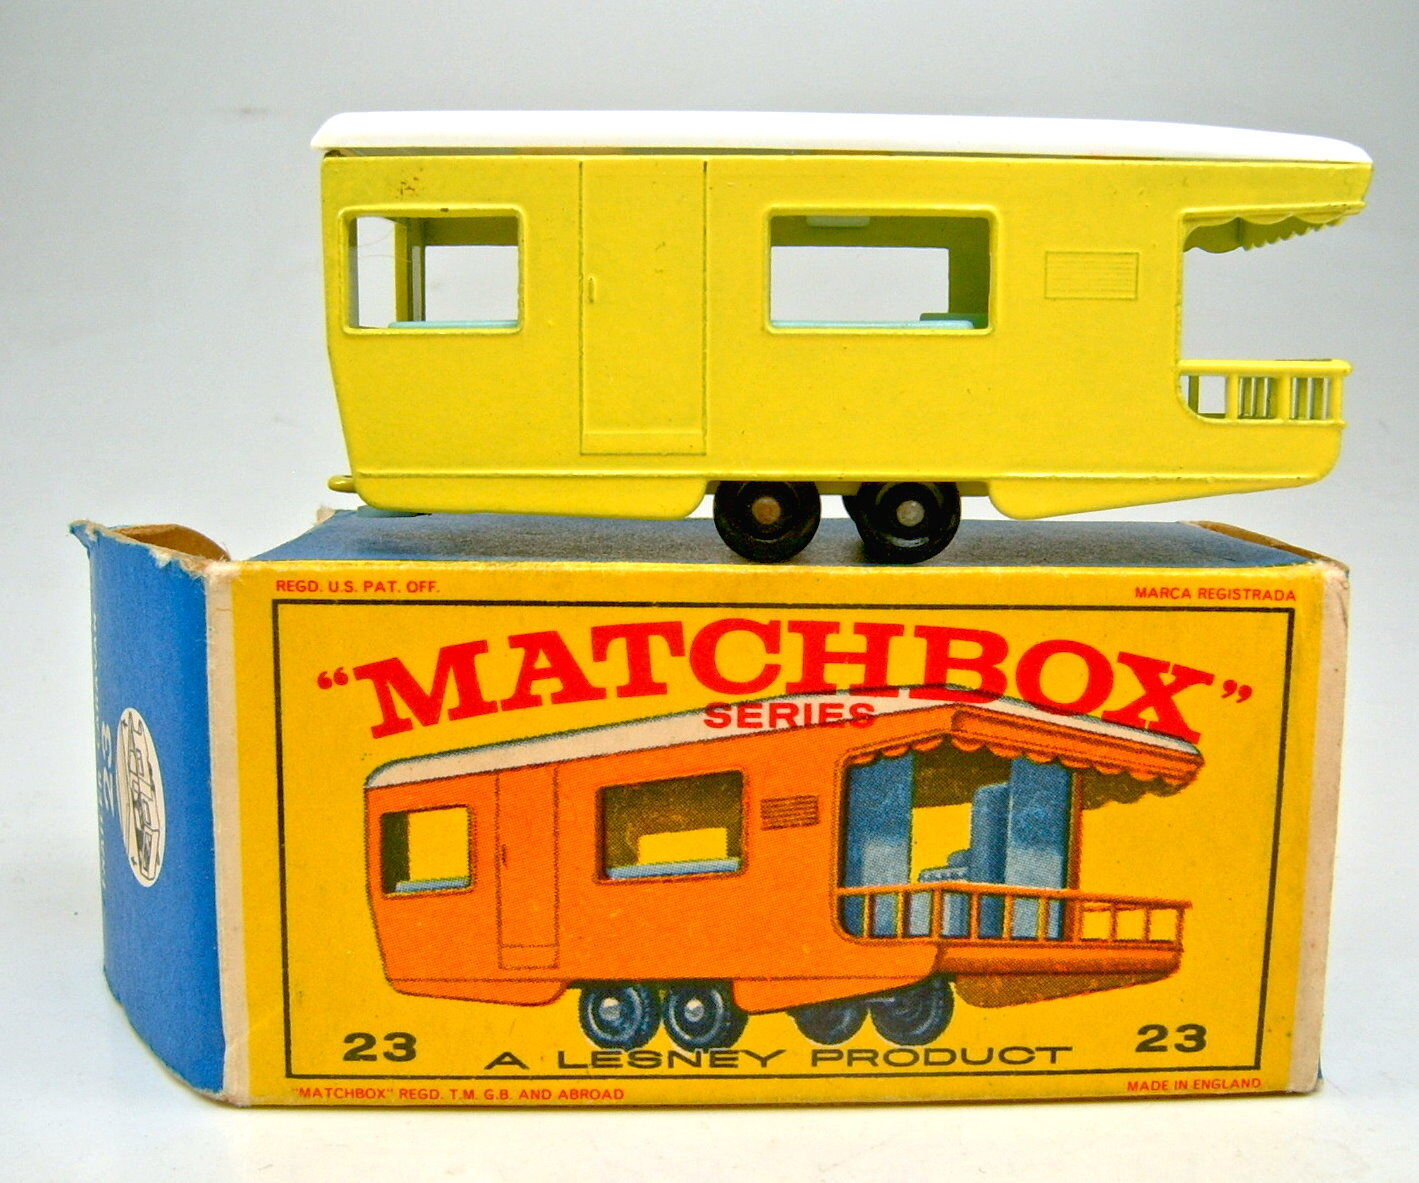 Matchbox Rw 23d Trailer Caravan 1. Colour Yellow in earlier  e1  Box With Yellow Figure